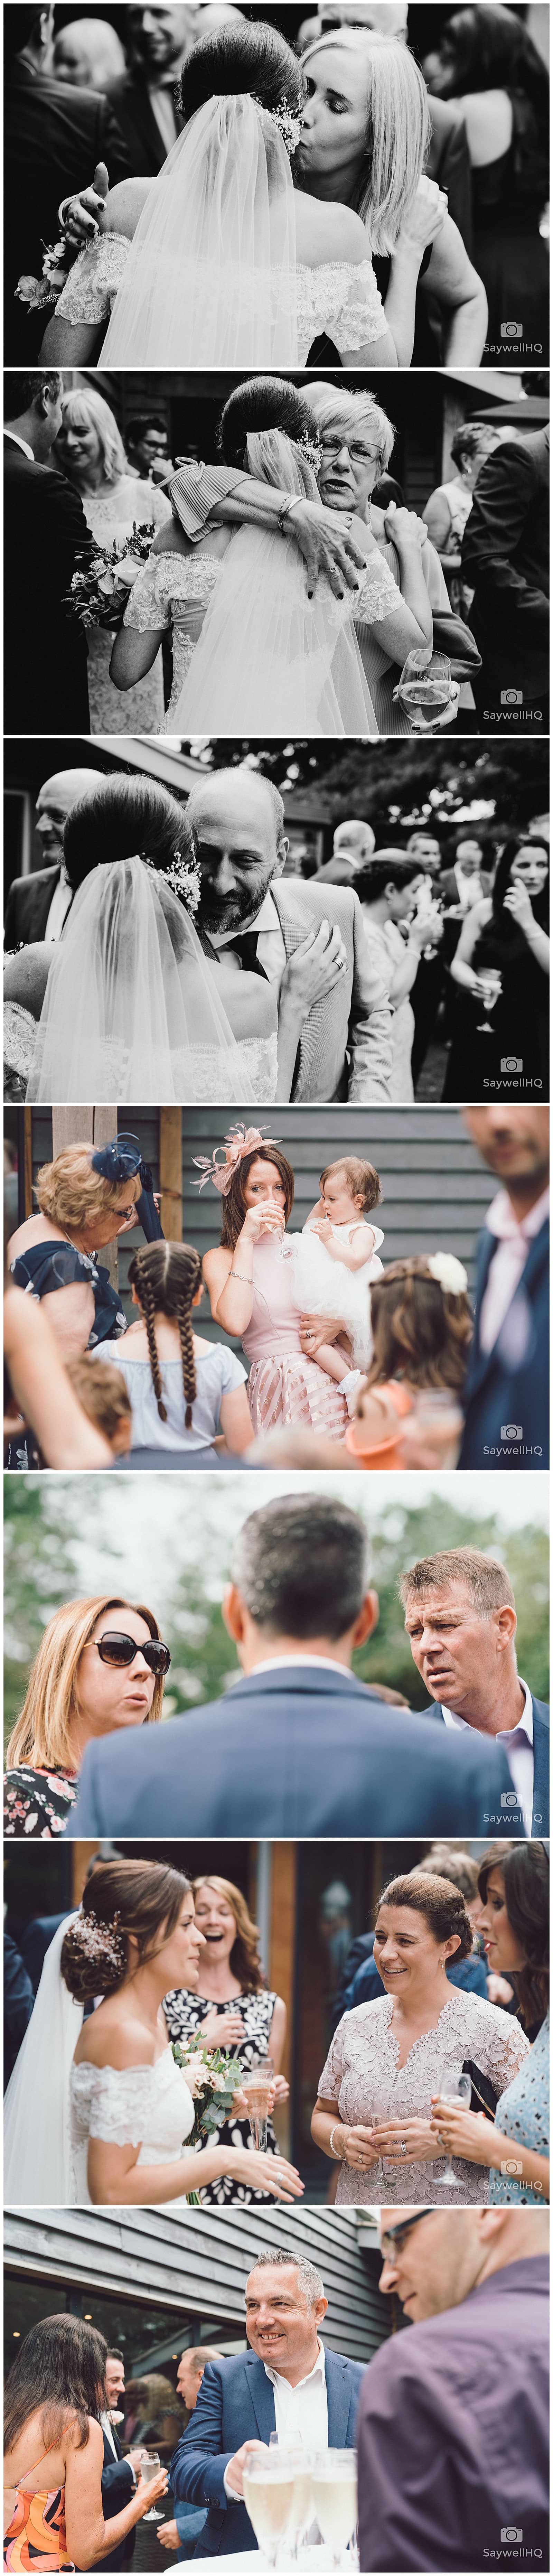 The Chequers Inn Woolsthorpe Wedding Photography - wedding guests chat and talk in the pub garden